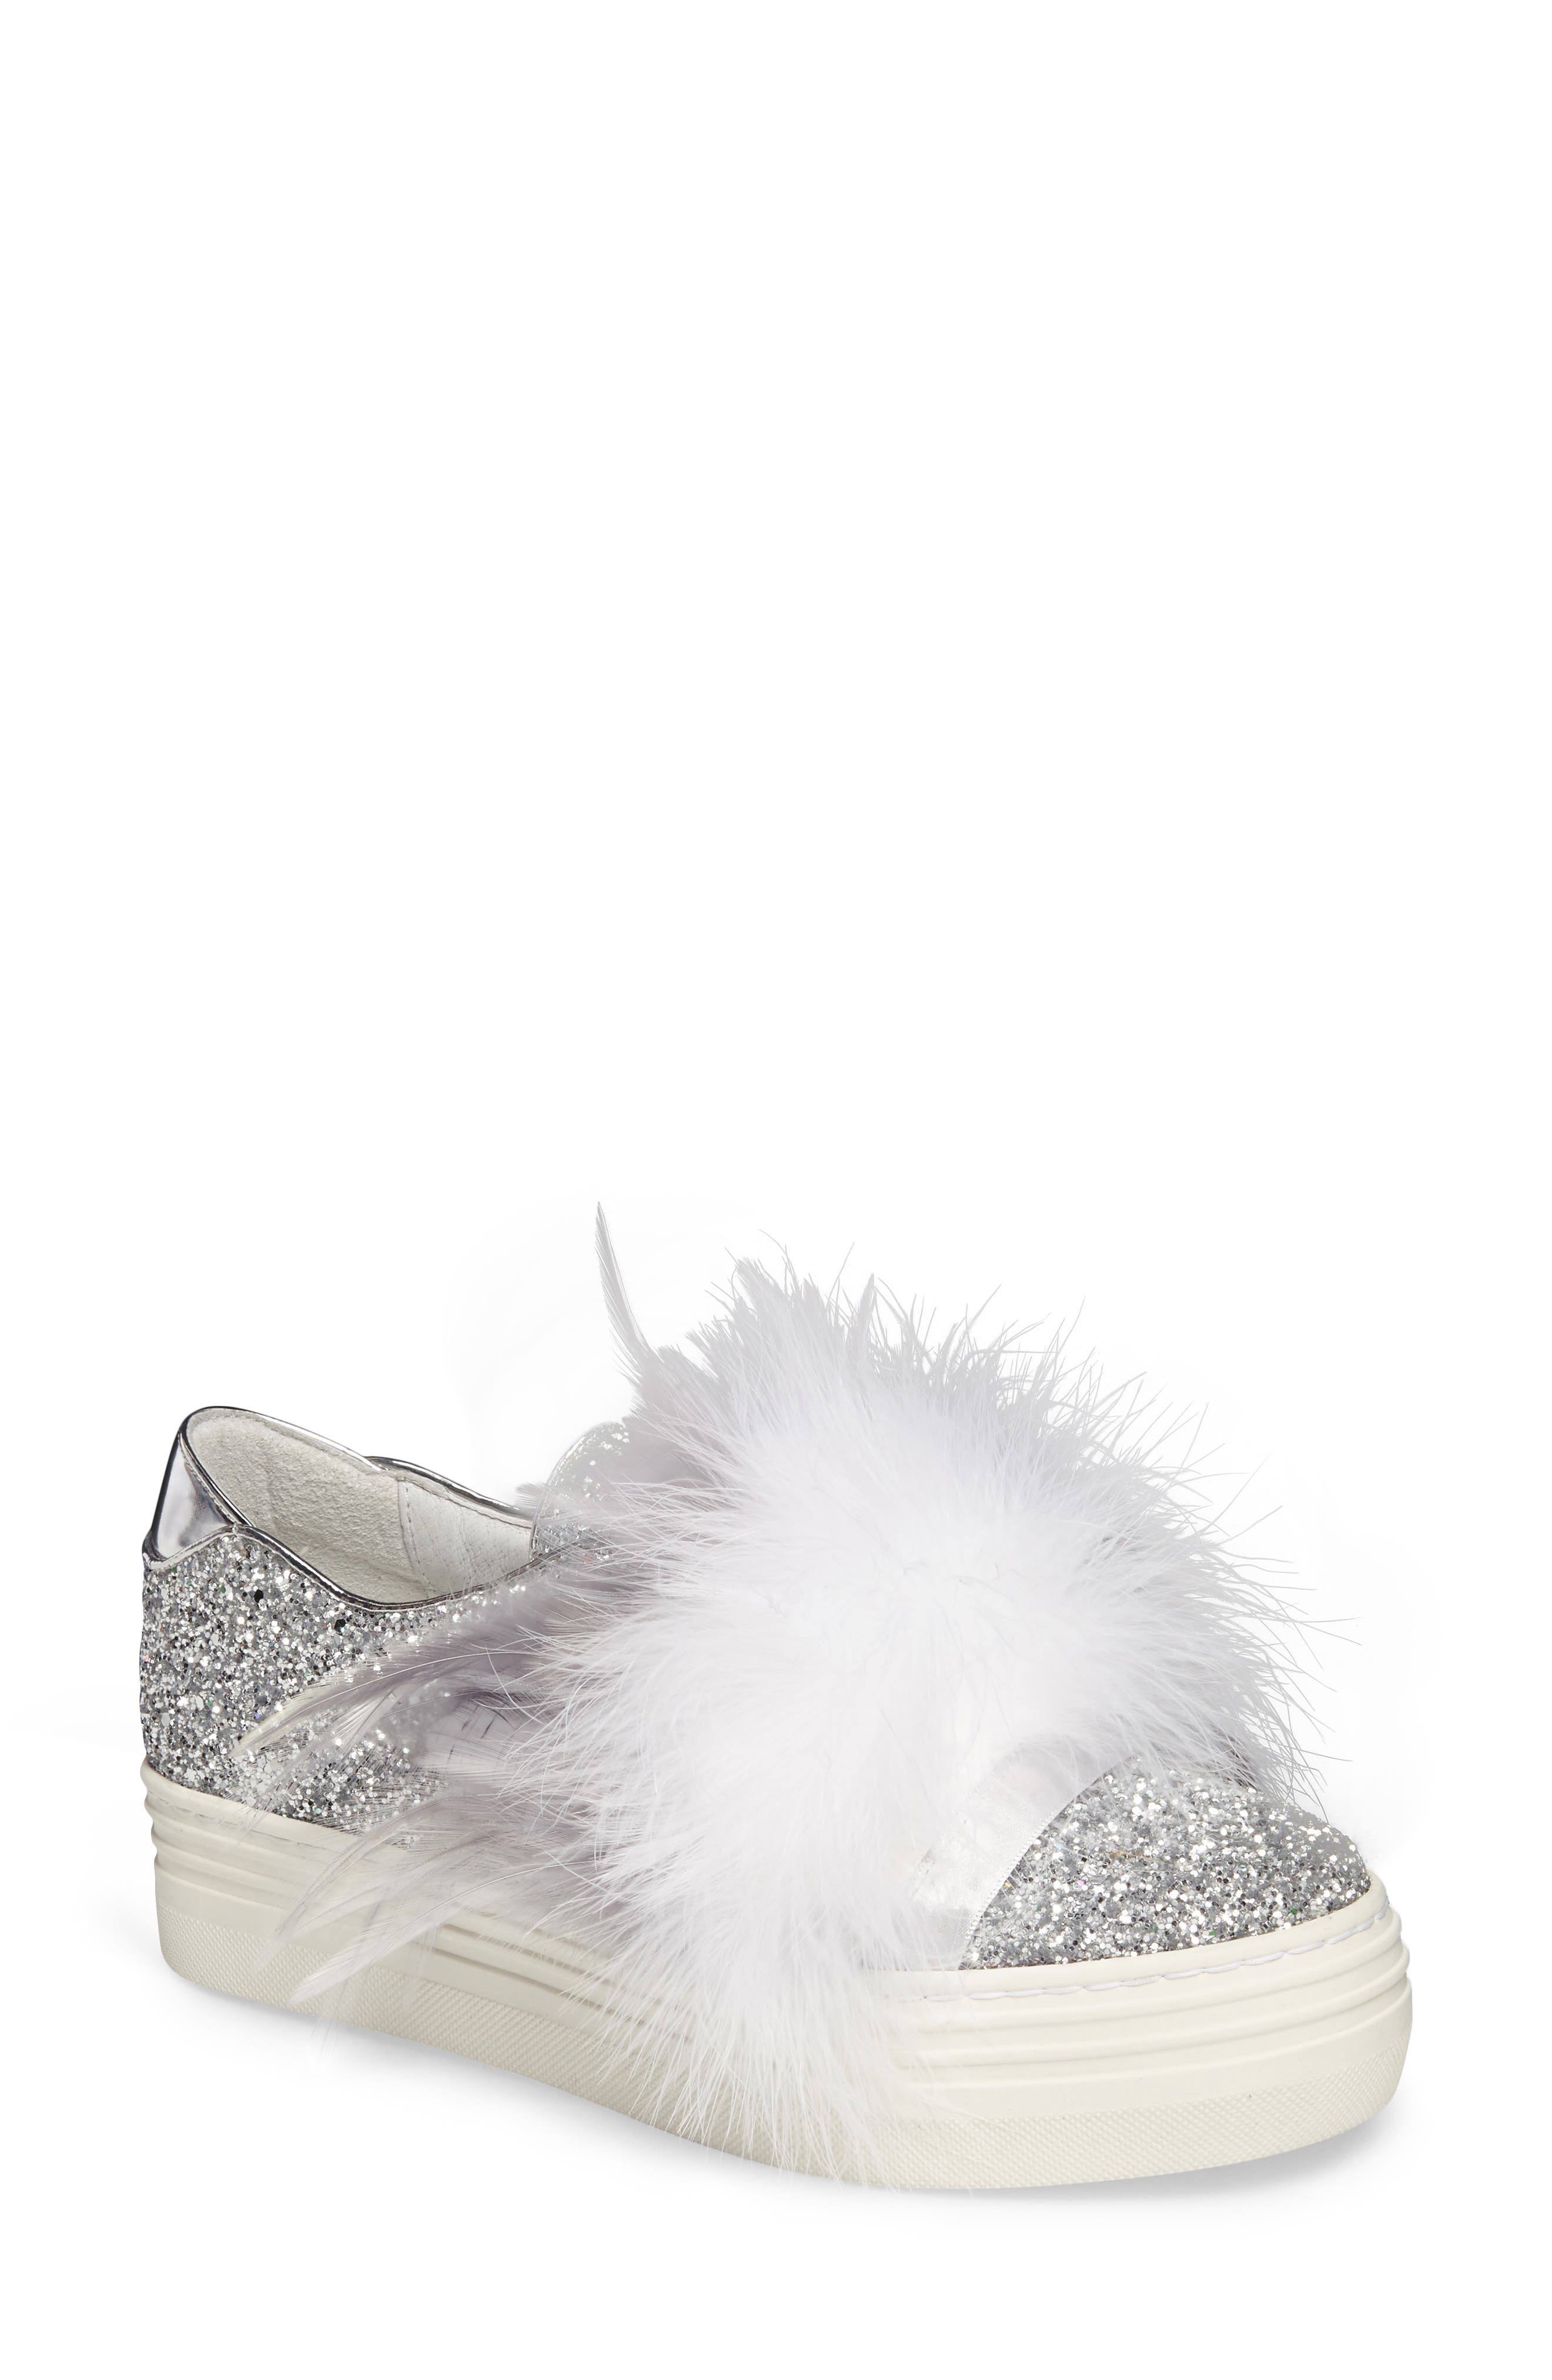 Kate Feathered Slip-On Sneaker,                             Main thumbnail 1, color,                             Grey Feather Silver Glitter